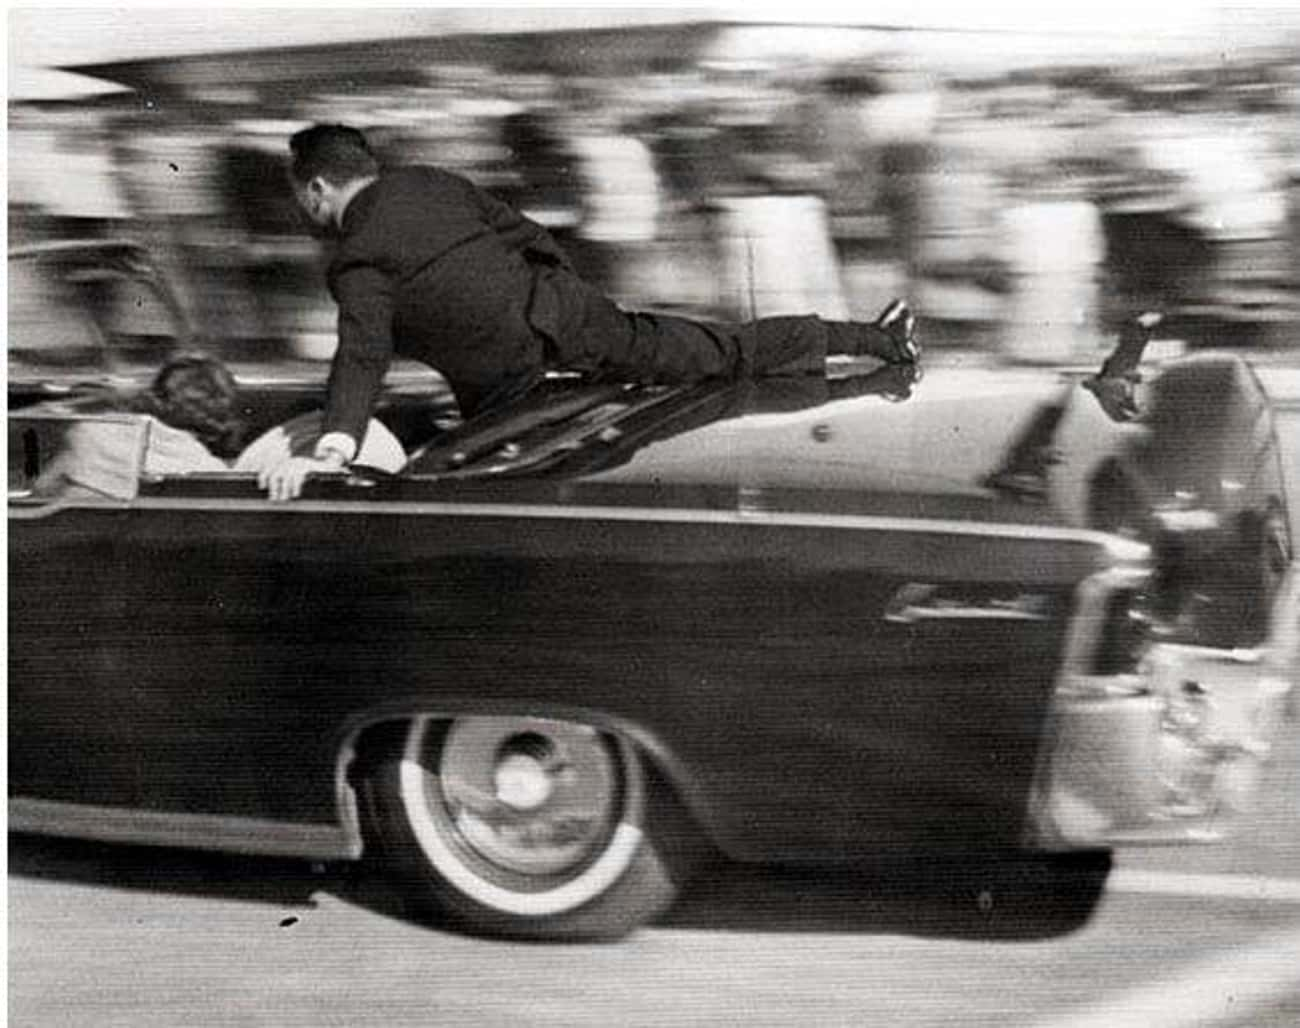 After The Shot, Jackie Kennedy Attempted To Flee The Limousine